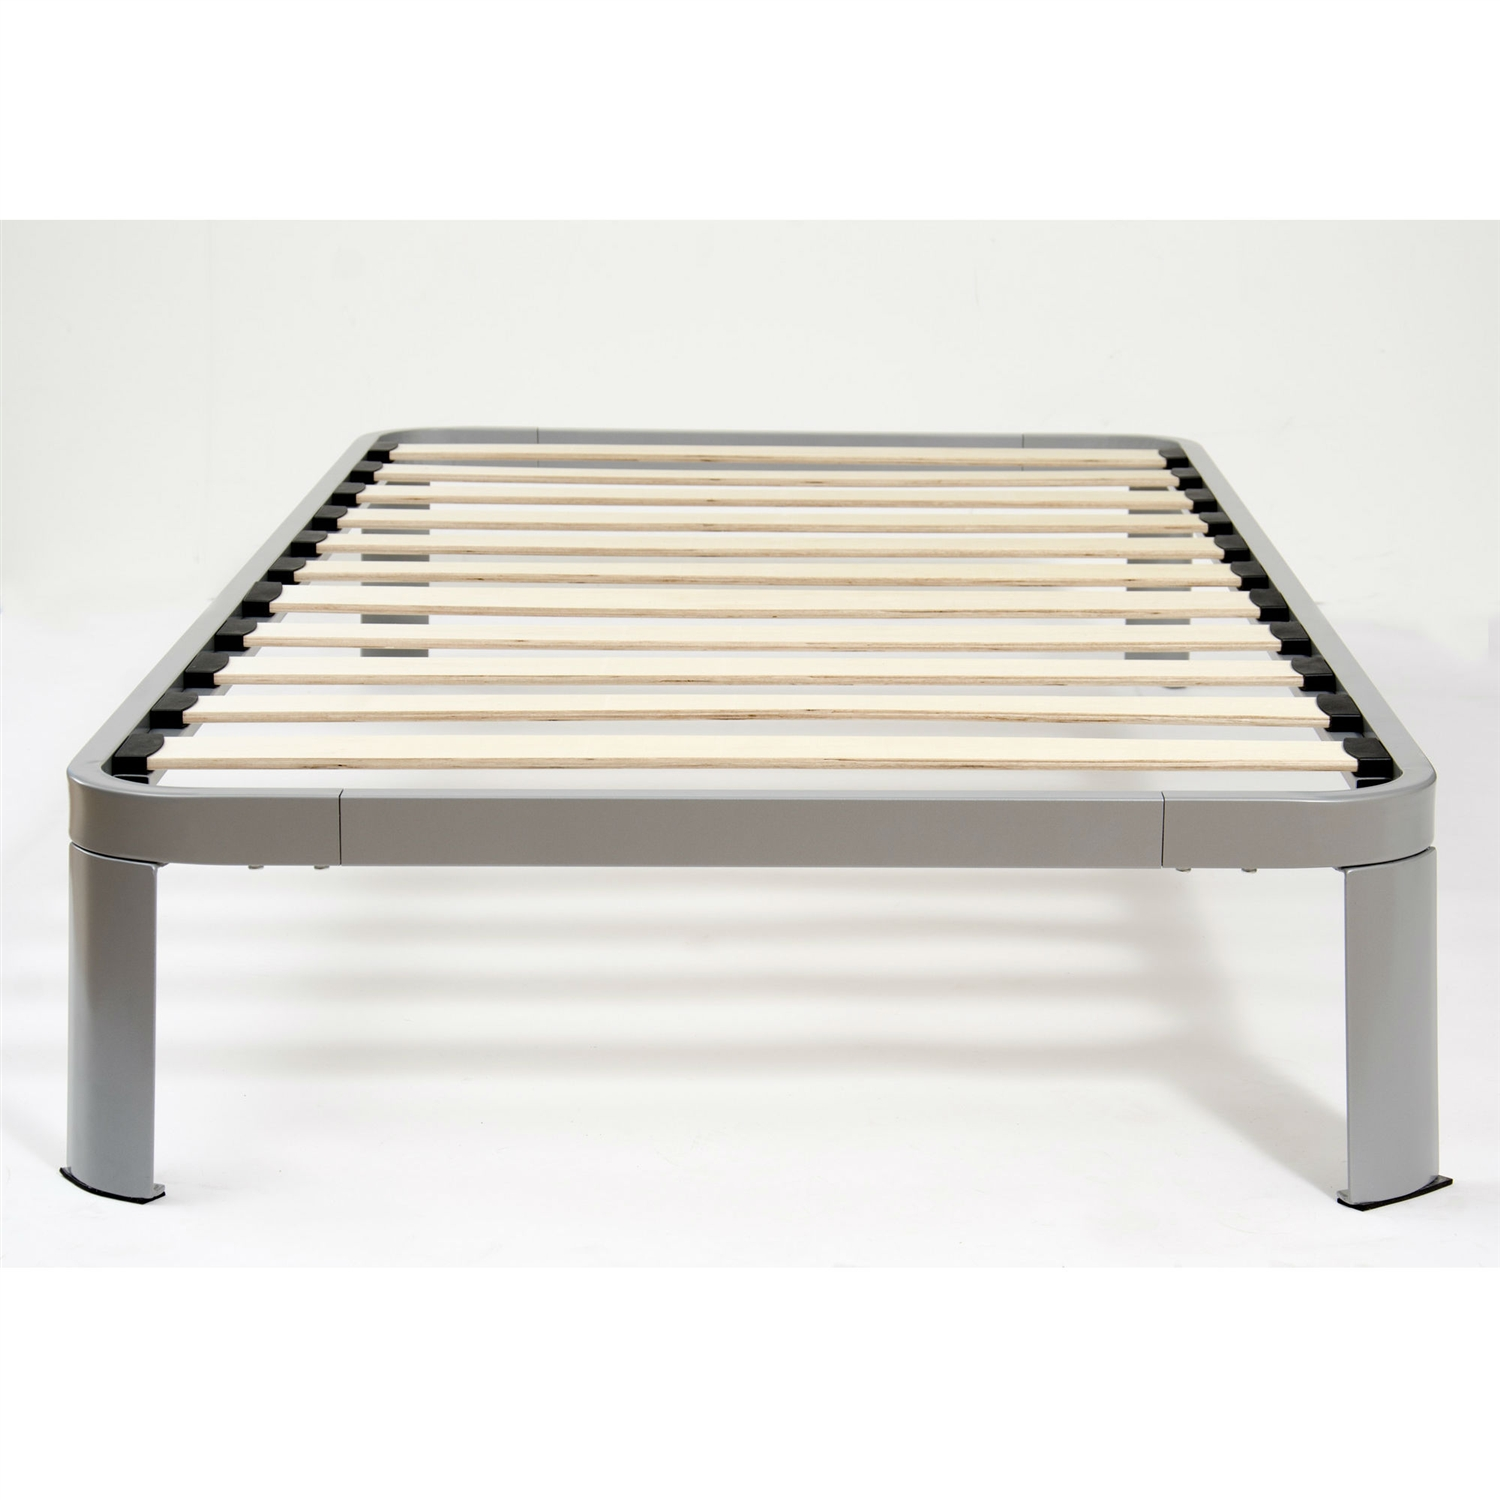 Superb Twin Size Luna Metal Platform Bed Frame With Wood Slats